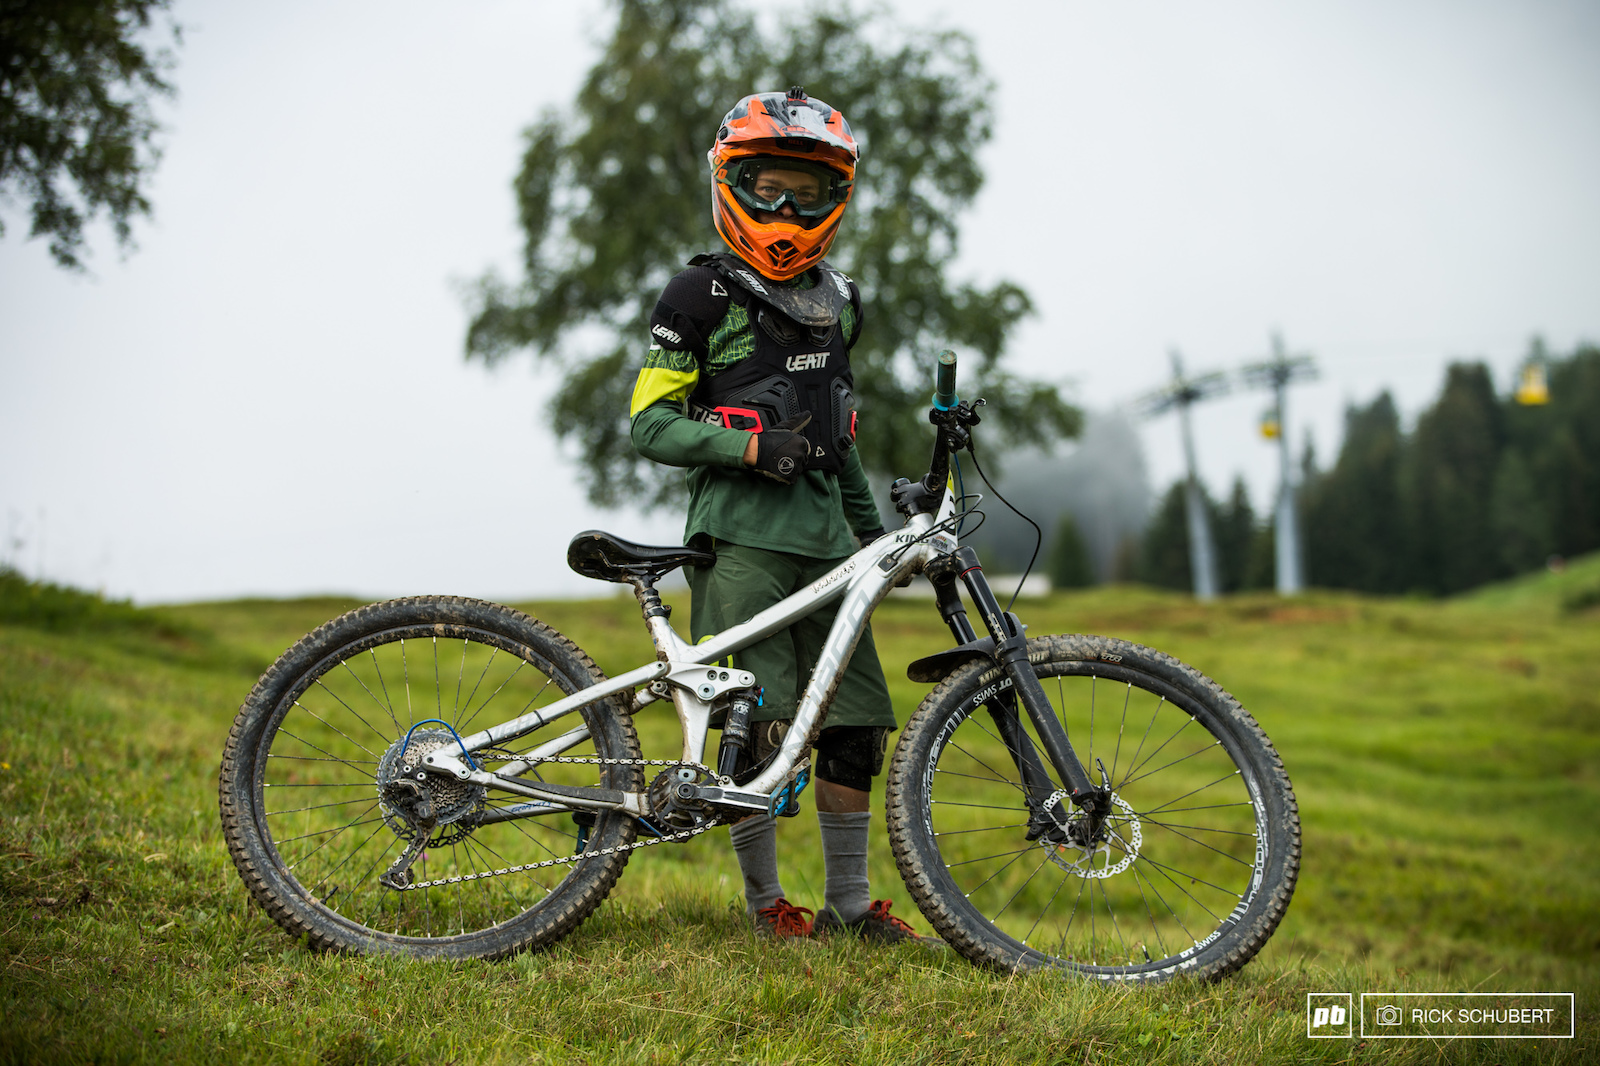 Nathan Devaux is just 11 years old and ripping the downhill track